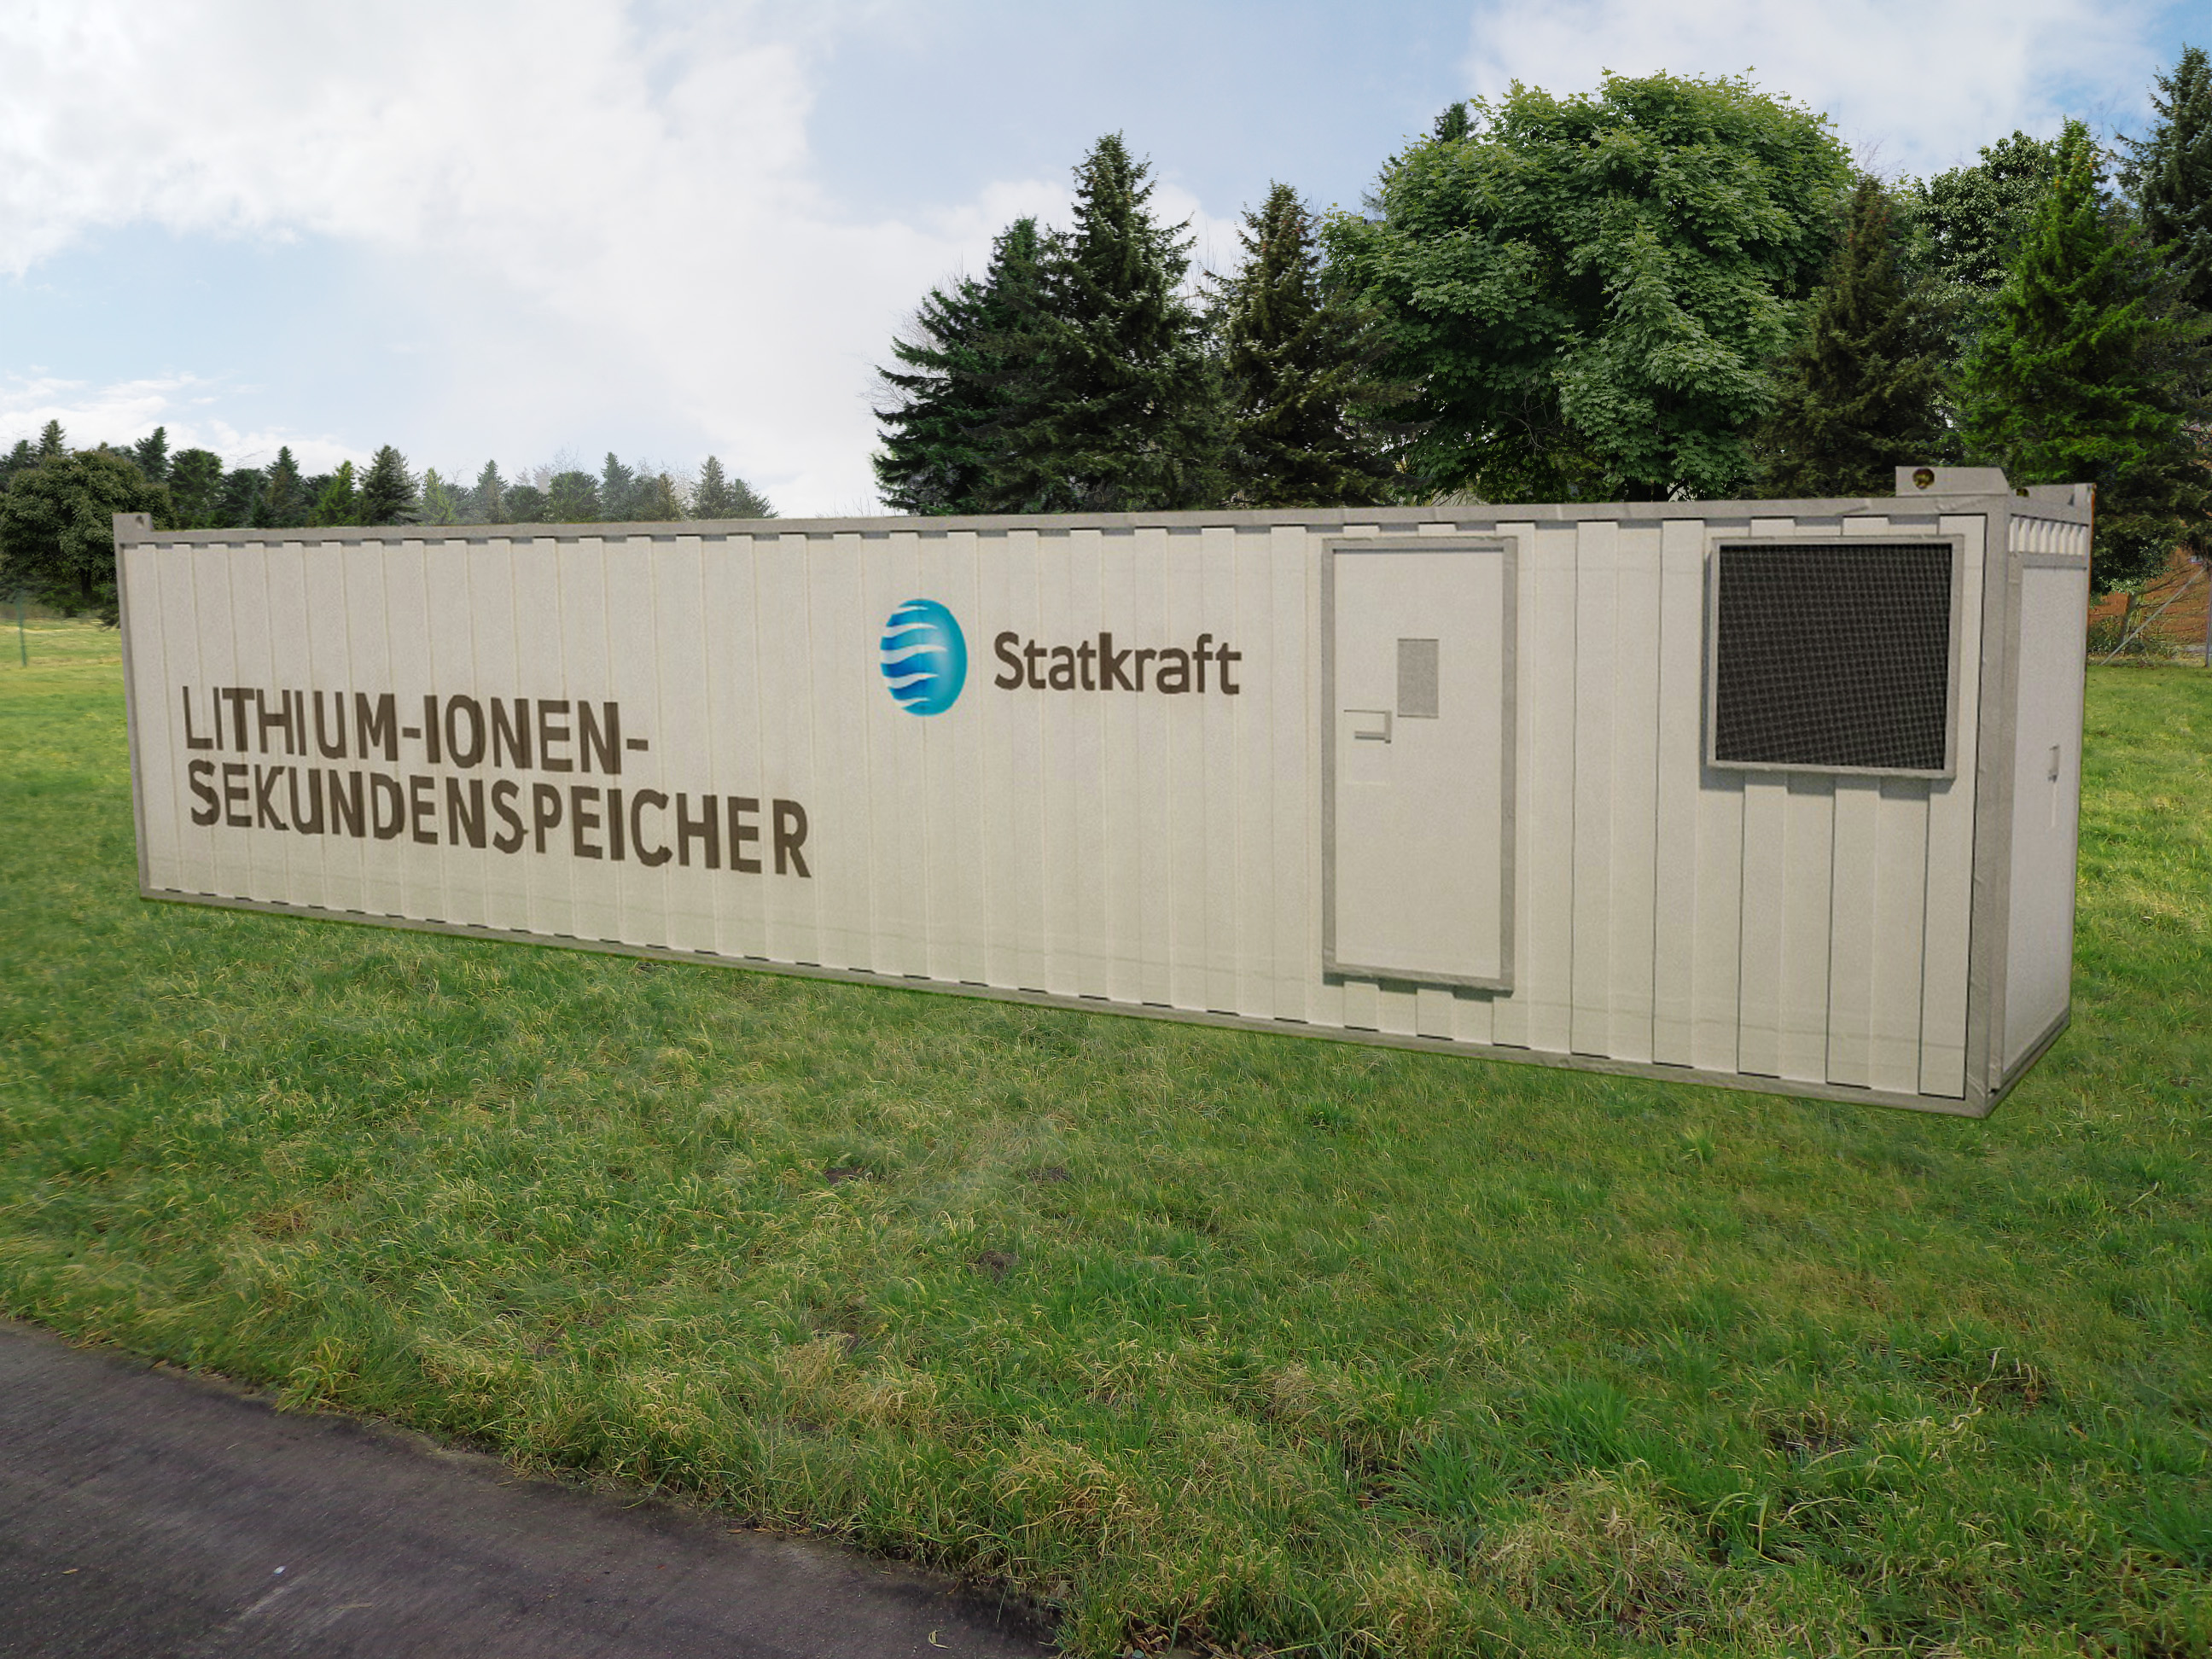 Modell eines Lithium-Ionen-Batterie-Containers